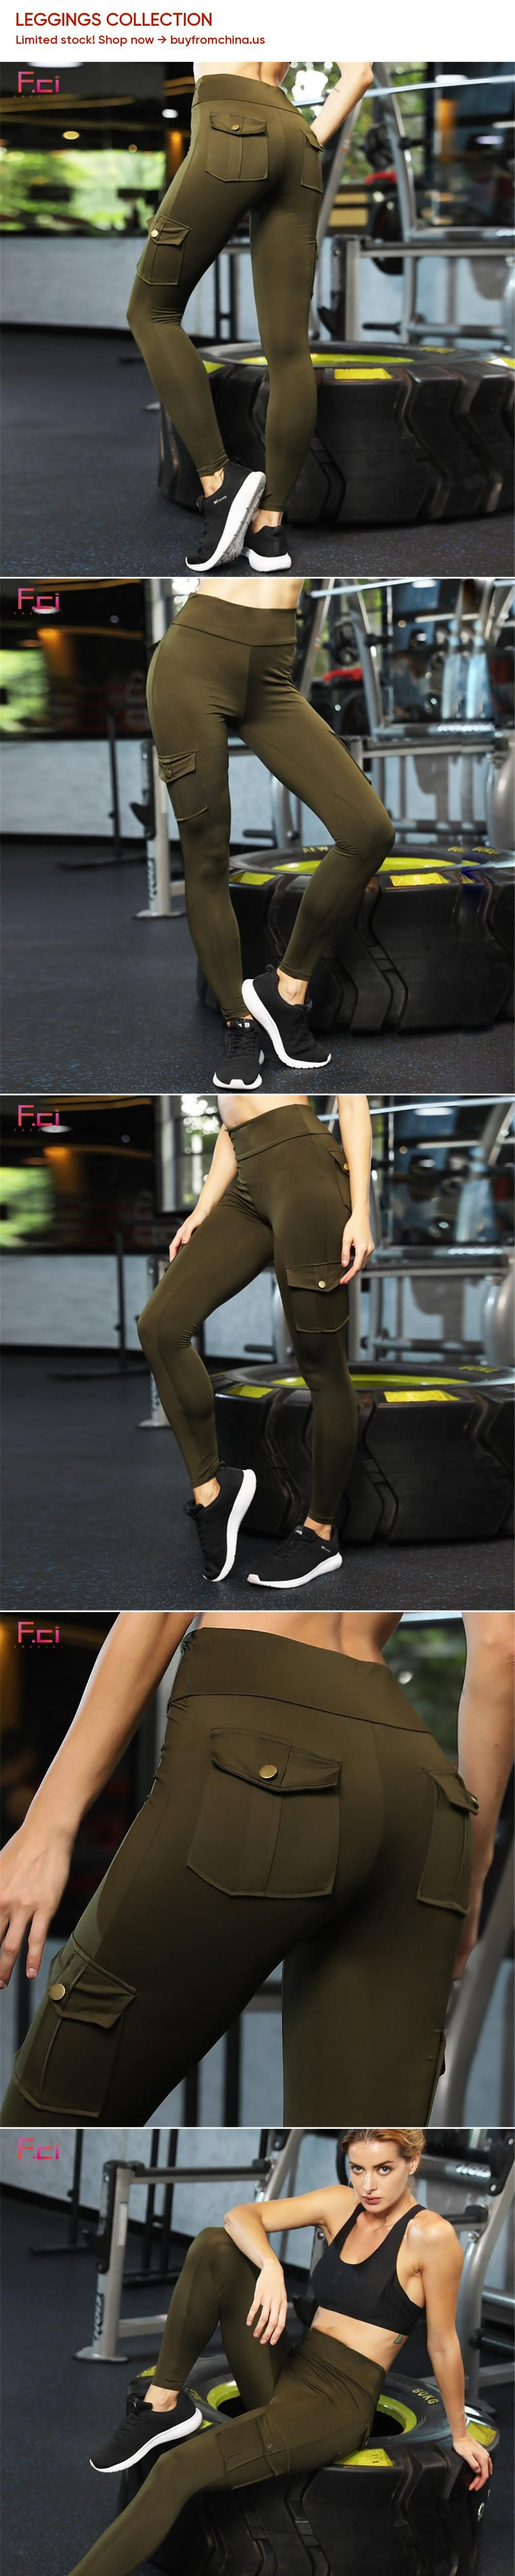 6b262669c028f FRECICI Women Skinny Cargo Pants Push Up High Waist Both Side Pocket  Leggings Hip Pocket Booty Leggings Workout Sporting Pants